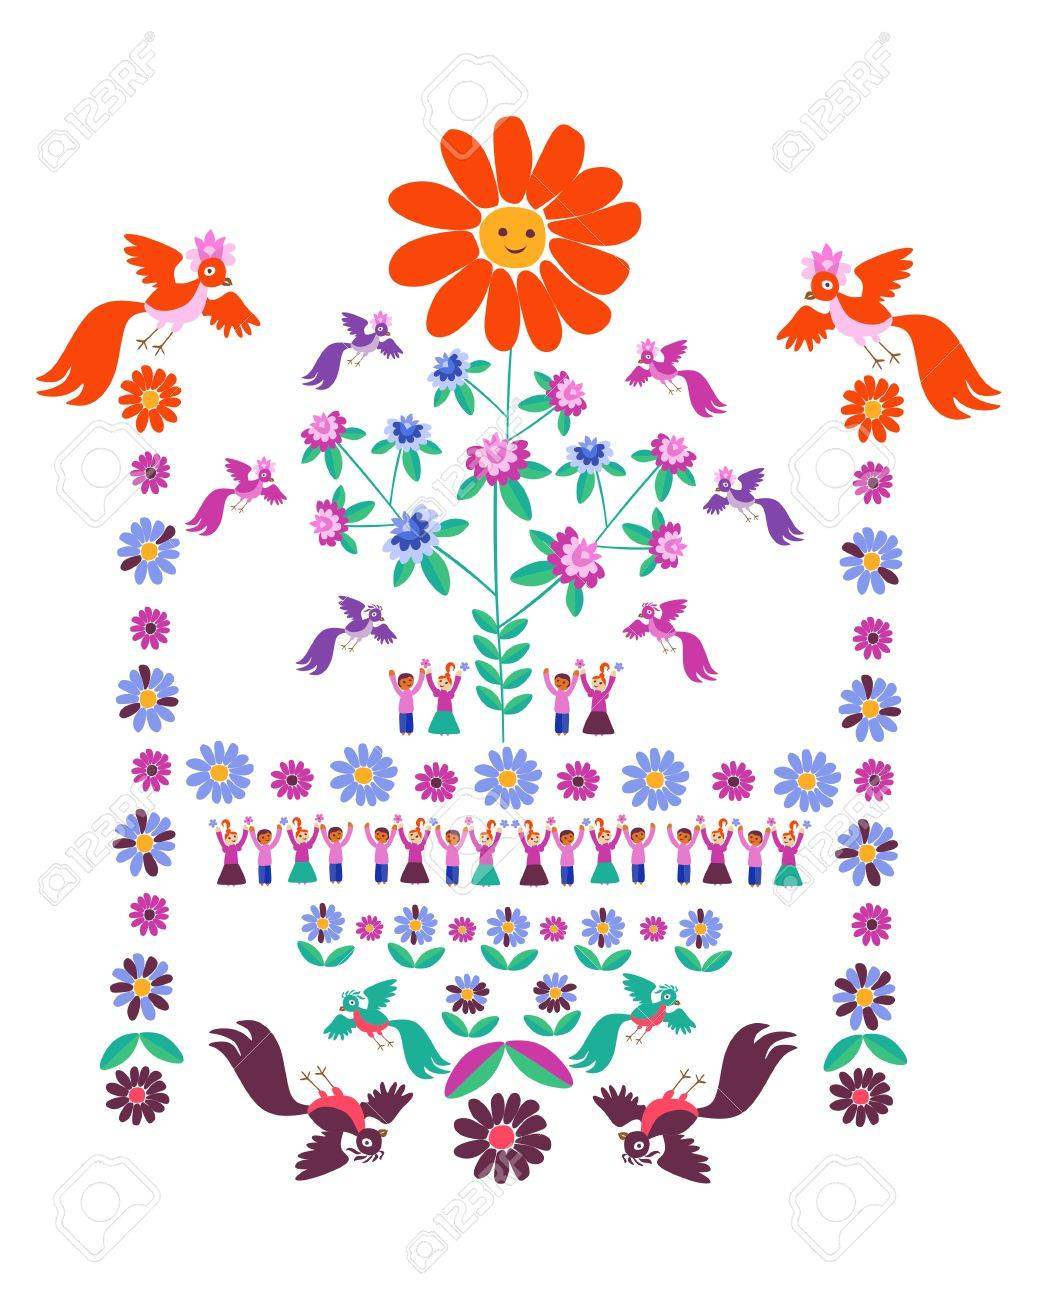 Festive template for embroidery flower sun blooming tree festive template for embroidery flower sun blooming tree birds and cute cartoon izmirmasajfo